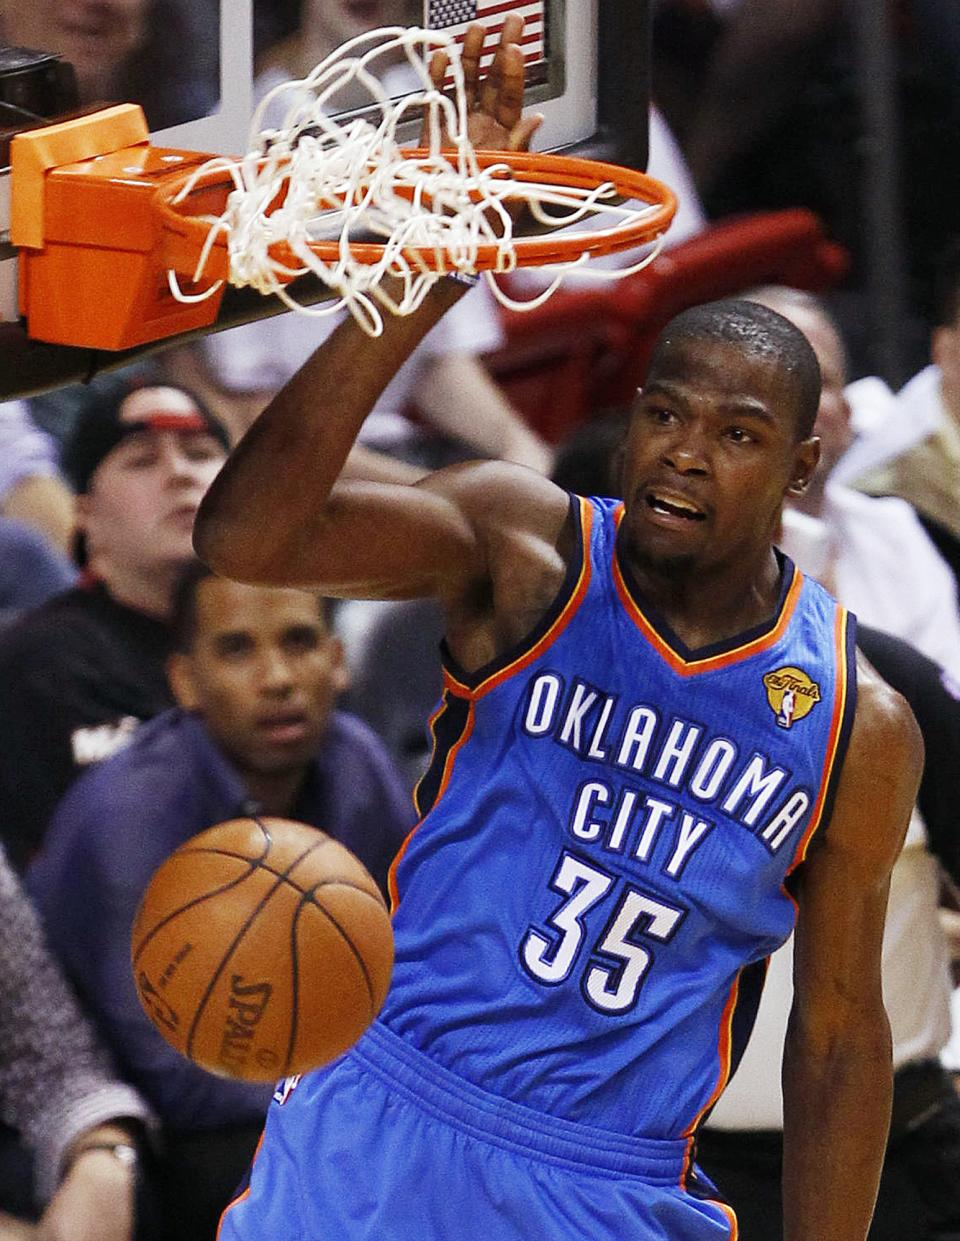 Oklahoma City Thunder small forward Kevin Durant (35) dunks against the Miami Heat during the first half at Game 3 of the NBA Finals basketball series, Sunday, June 17, 2012, in Miami. (AP Photo/Wilfredo Lee)